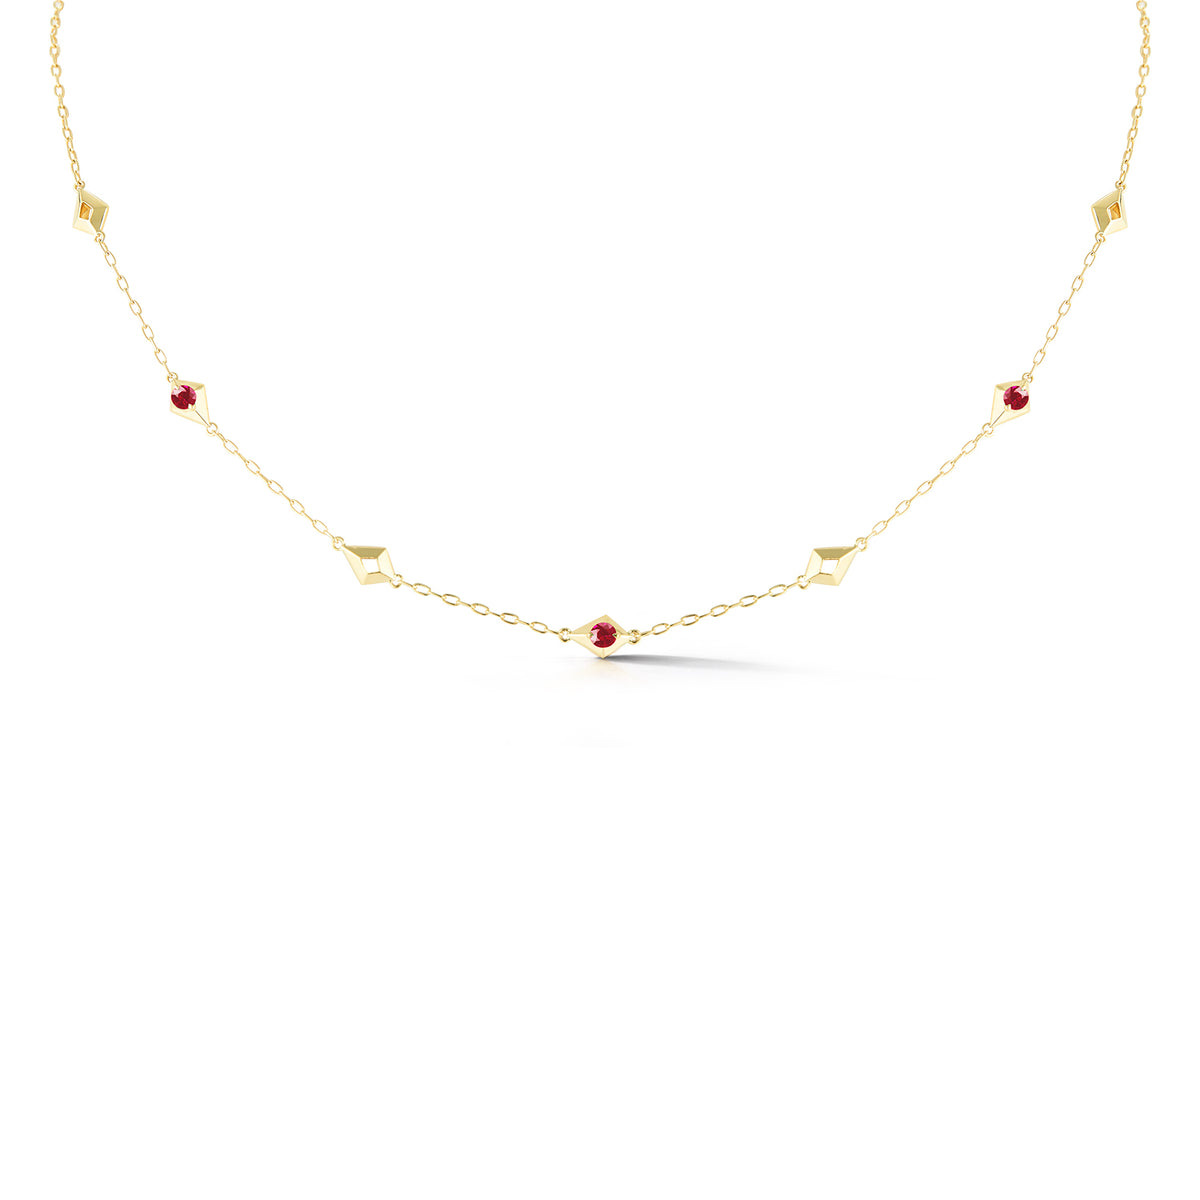 Valani 18K Yellow Gold Ruby Station Necklace